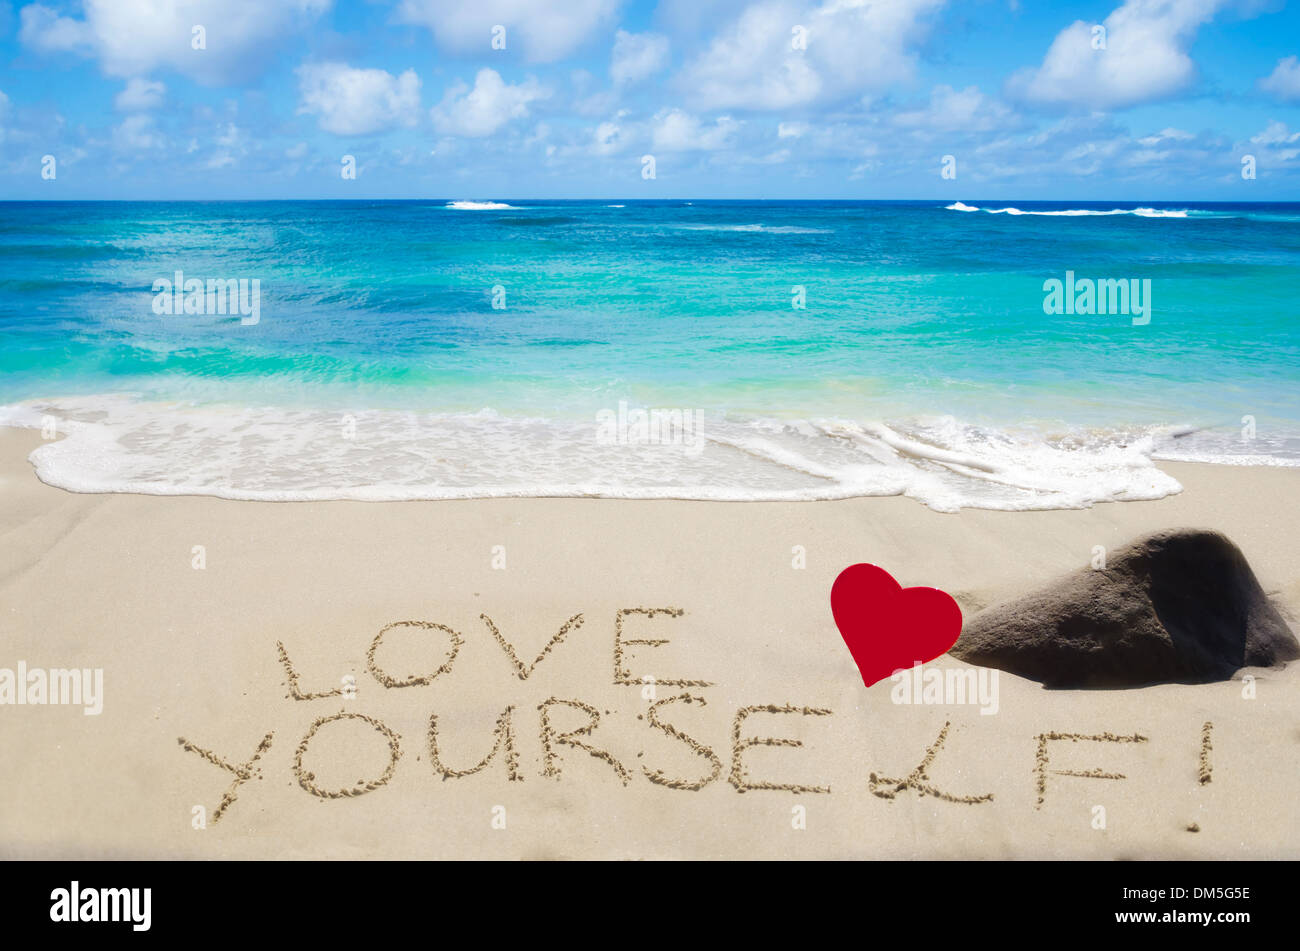 Sign 'Love yourself' with heart on the sandy beach by the ocean - Stock Image